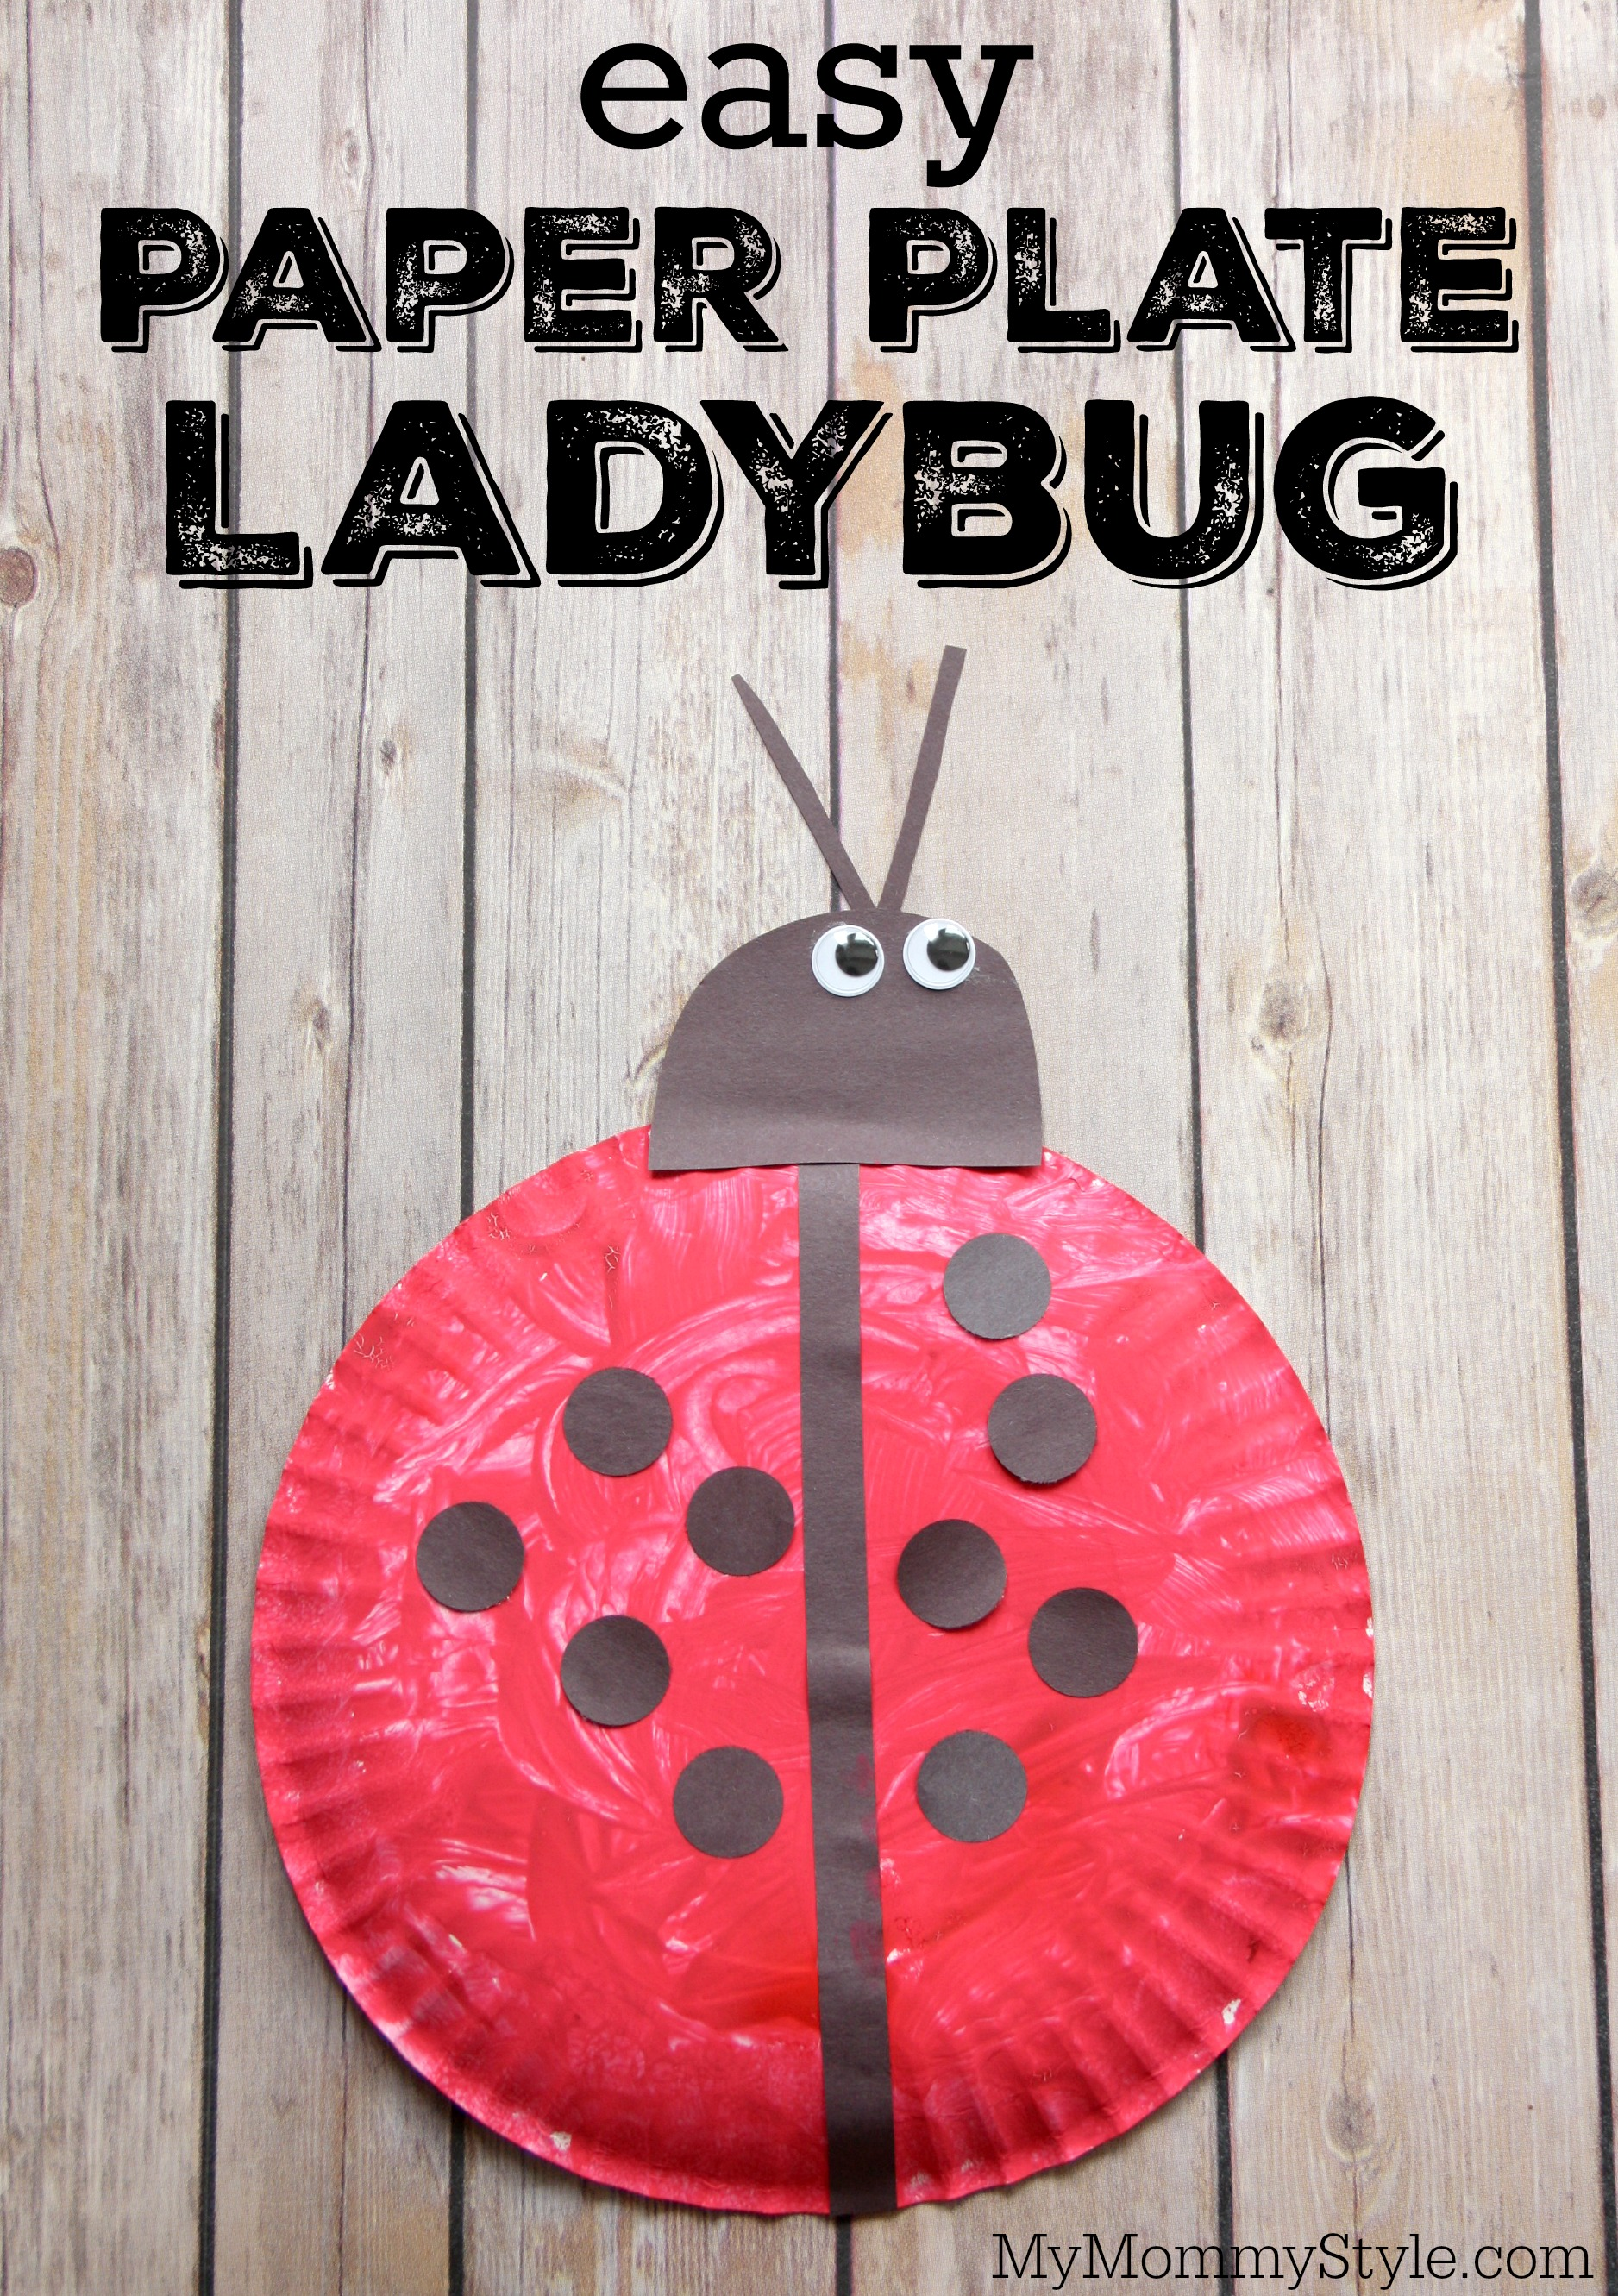 & Easy Paper Plate Ladybug Craft - My Mommy Style